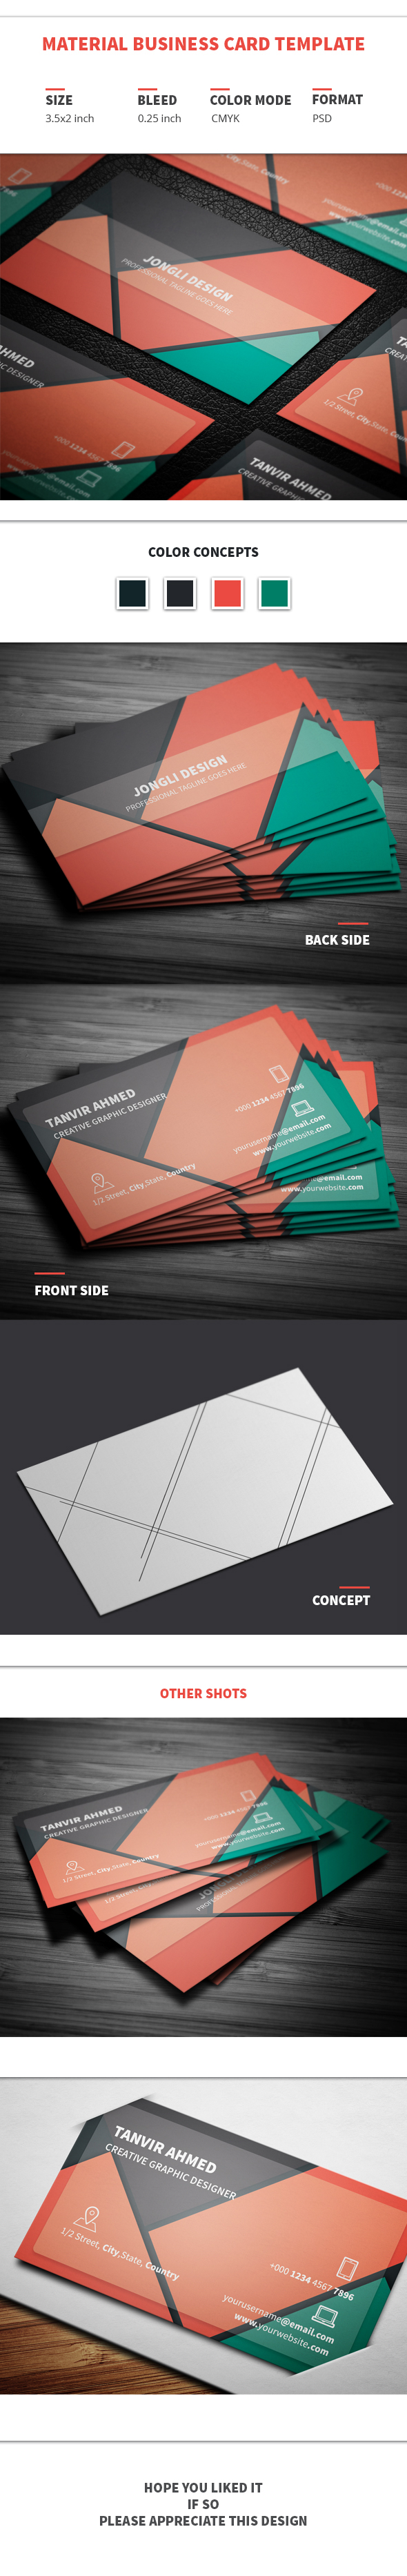 Material Business Card Template Freebie on Behance